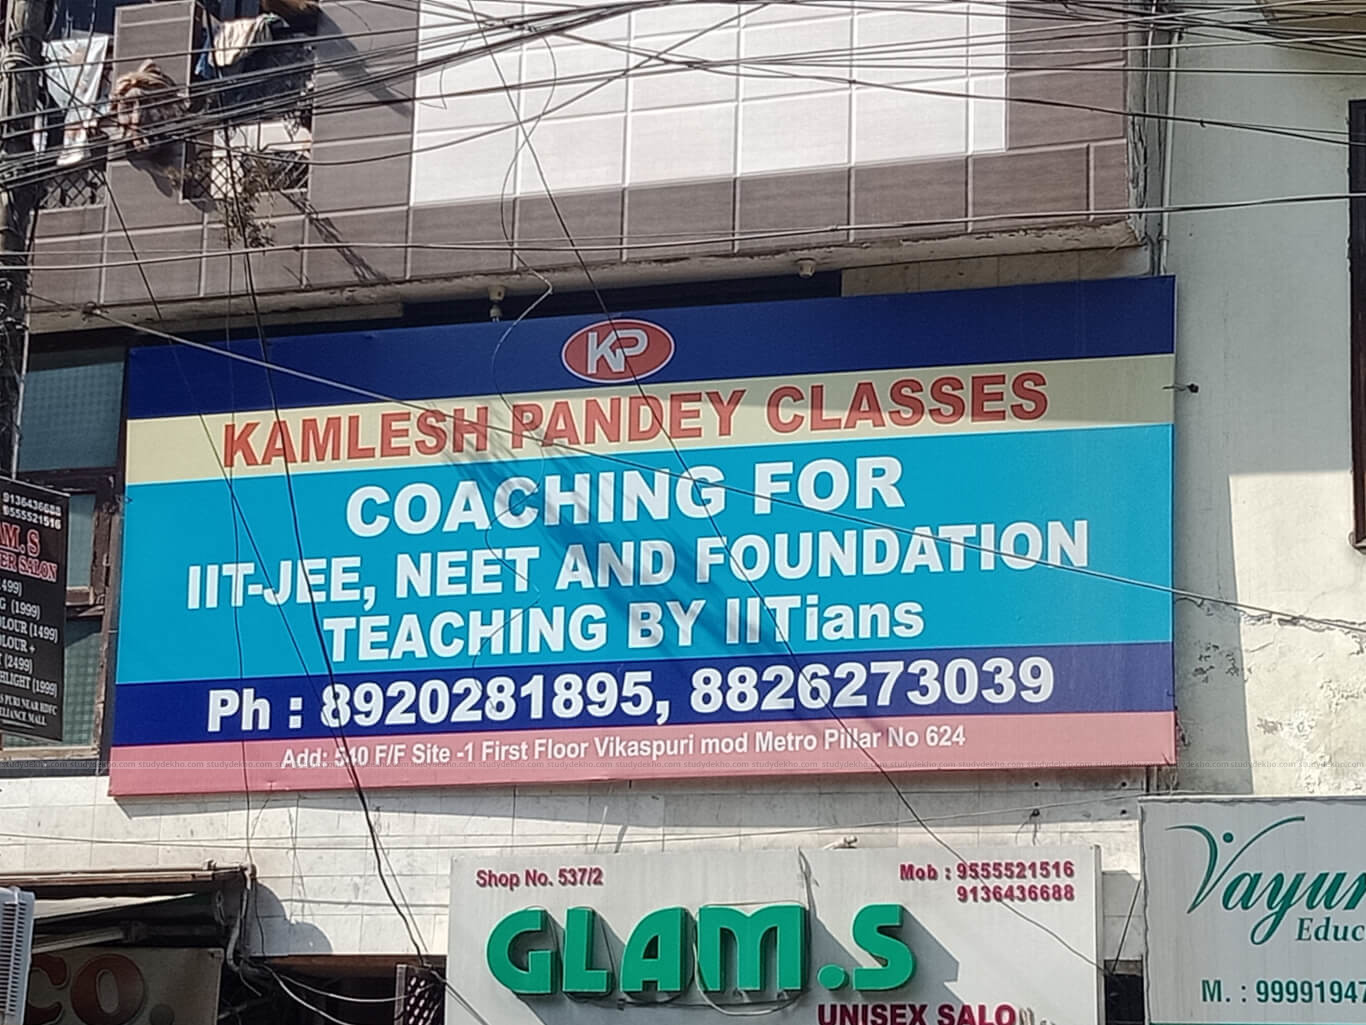 KAMLESH PANDEY CLASSES Logo